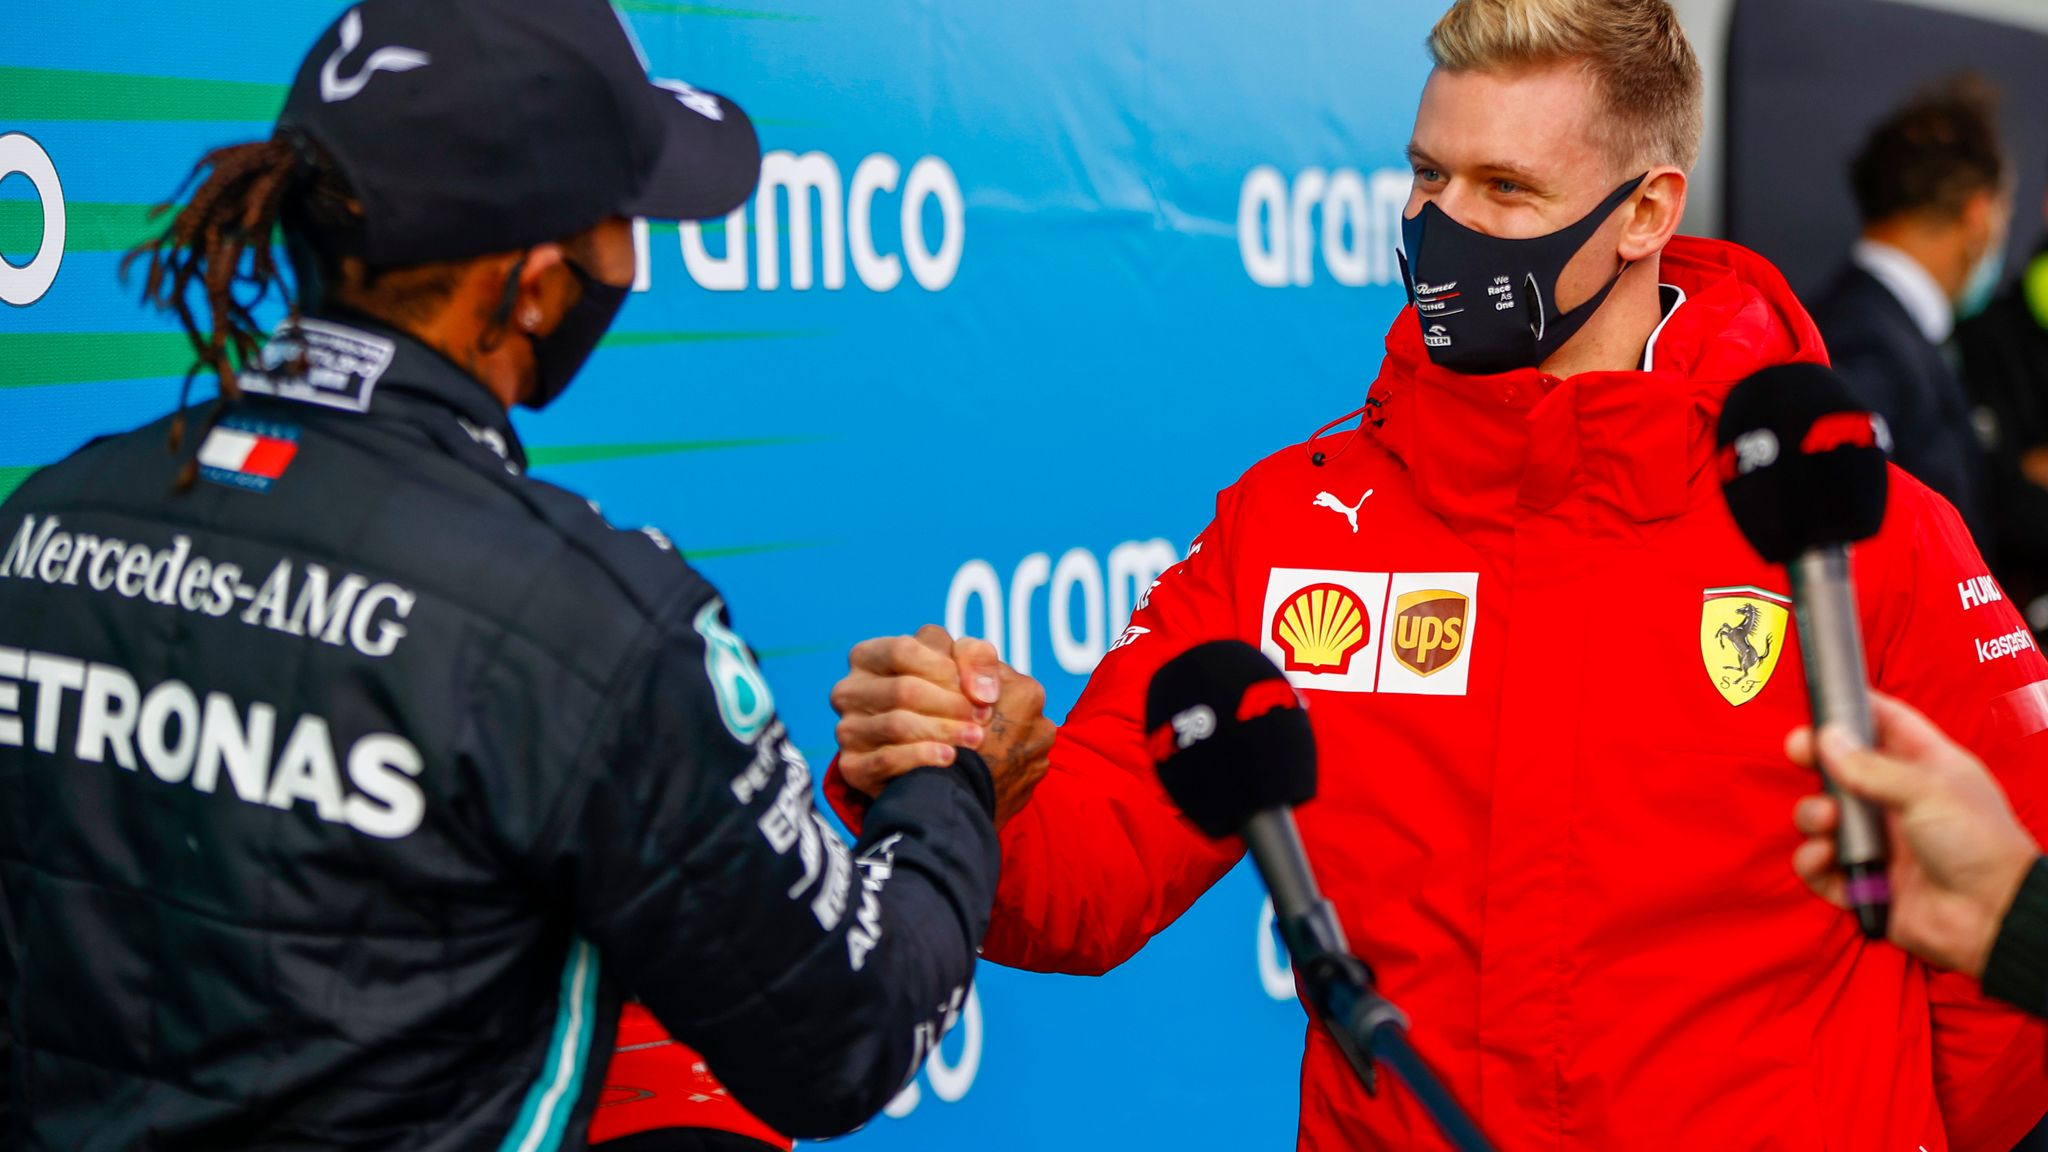 Eifel Gp Lewis Hamilton S Michael Schumacher Tribute After Historic Win F1 News